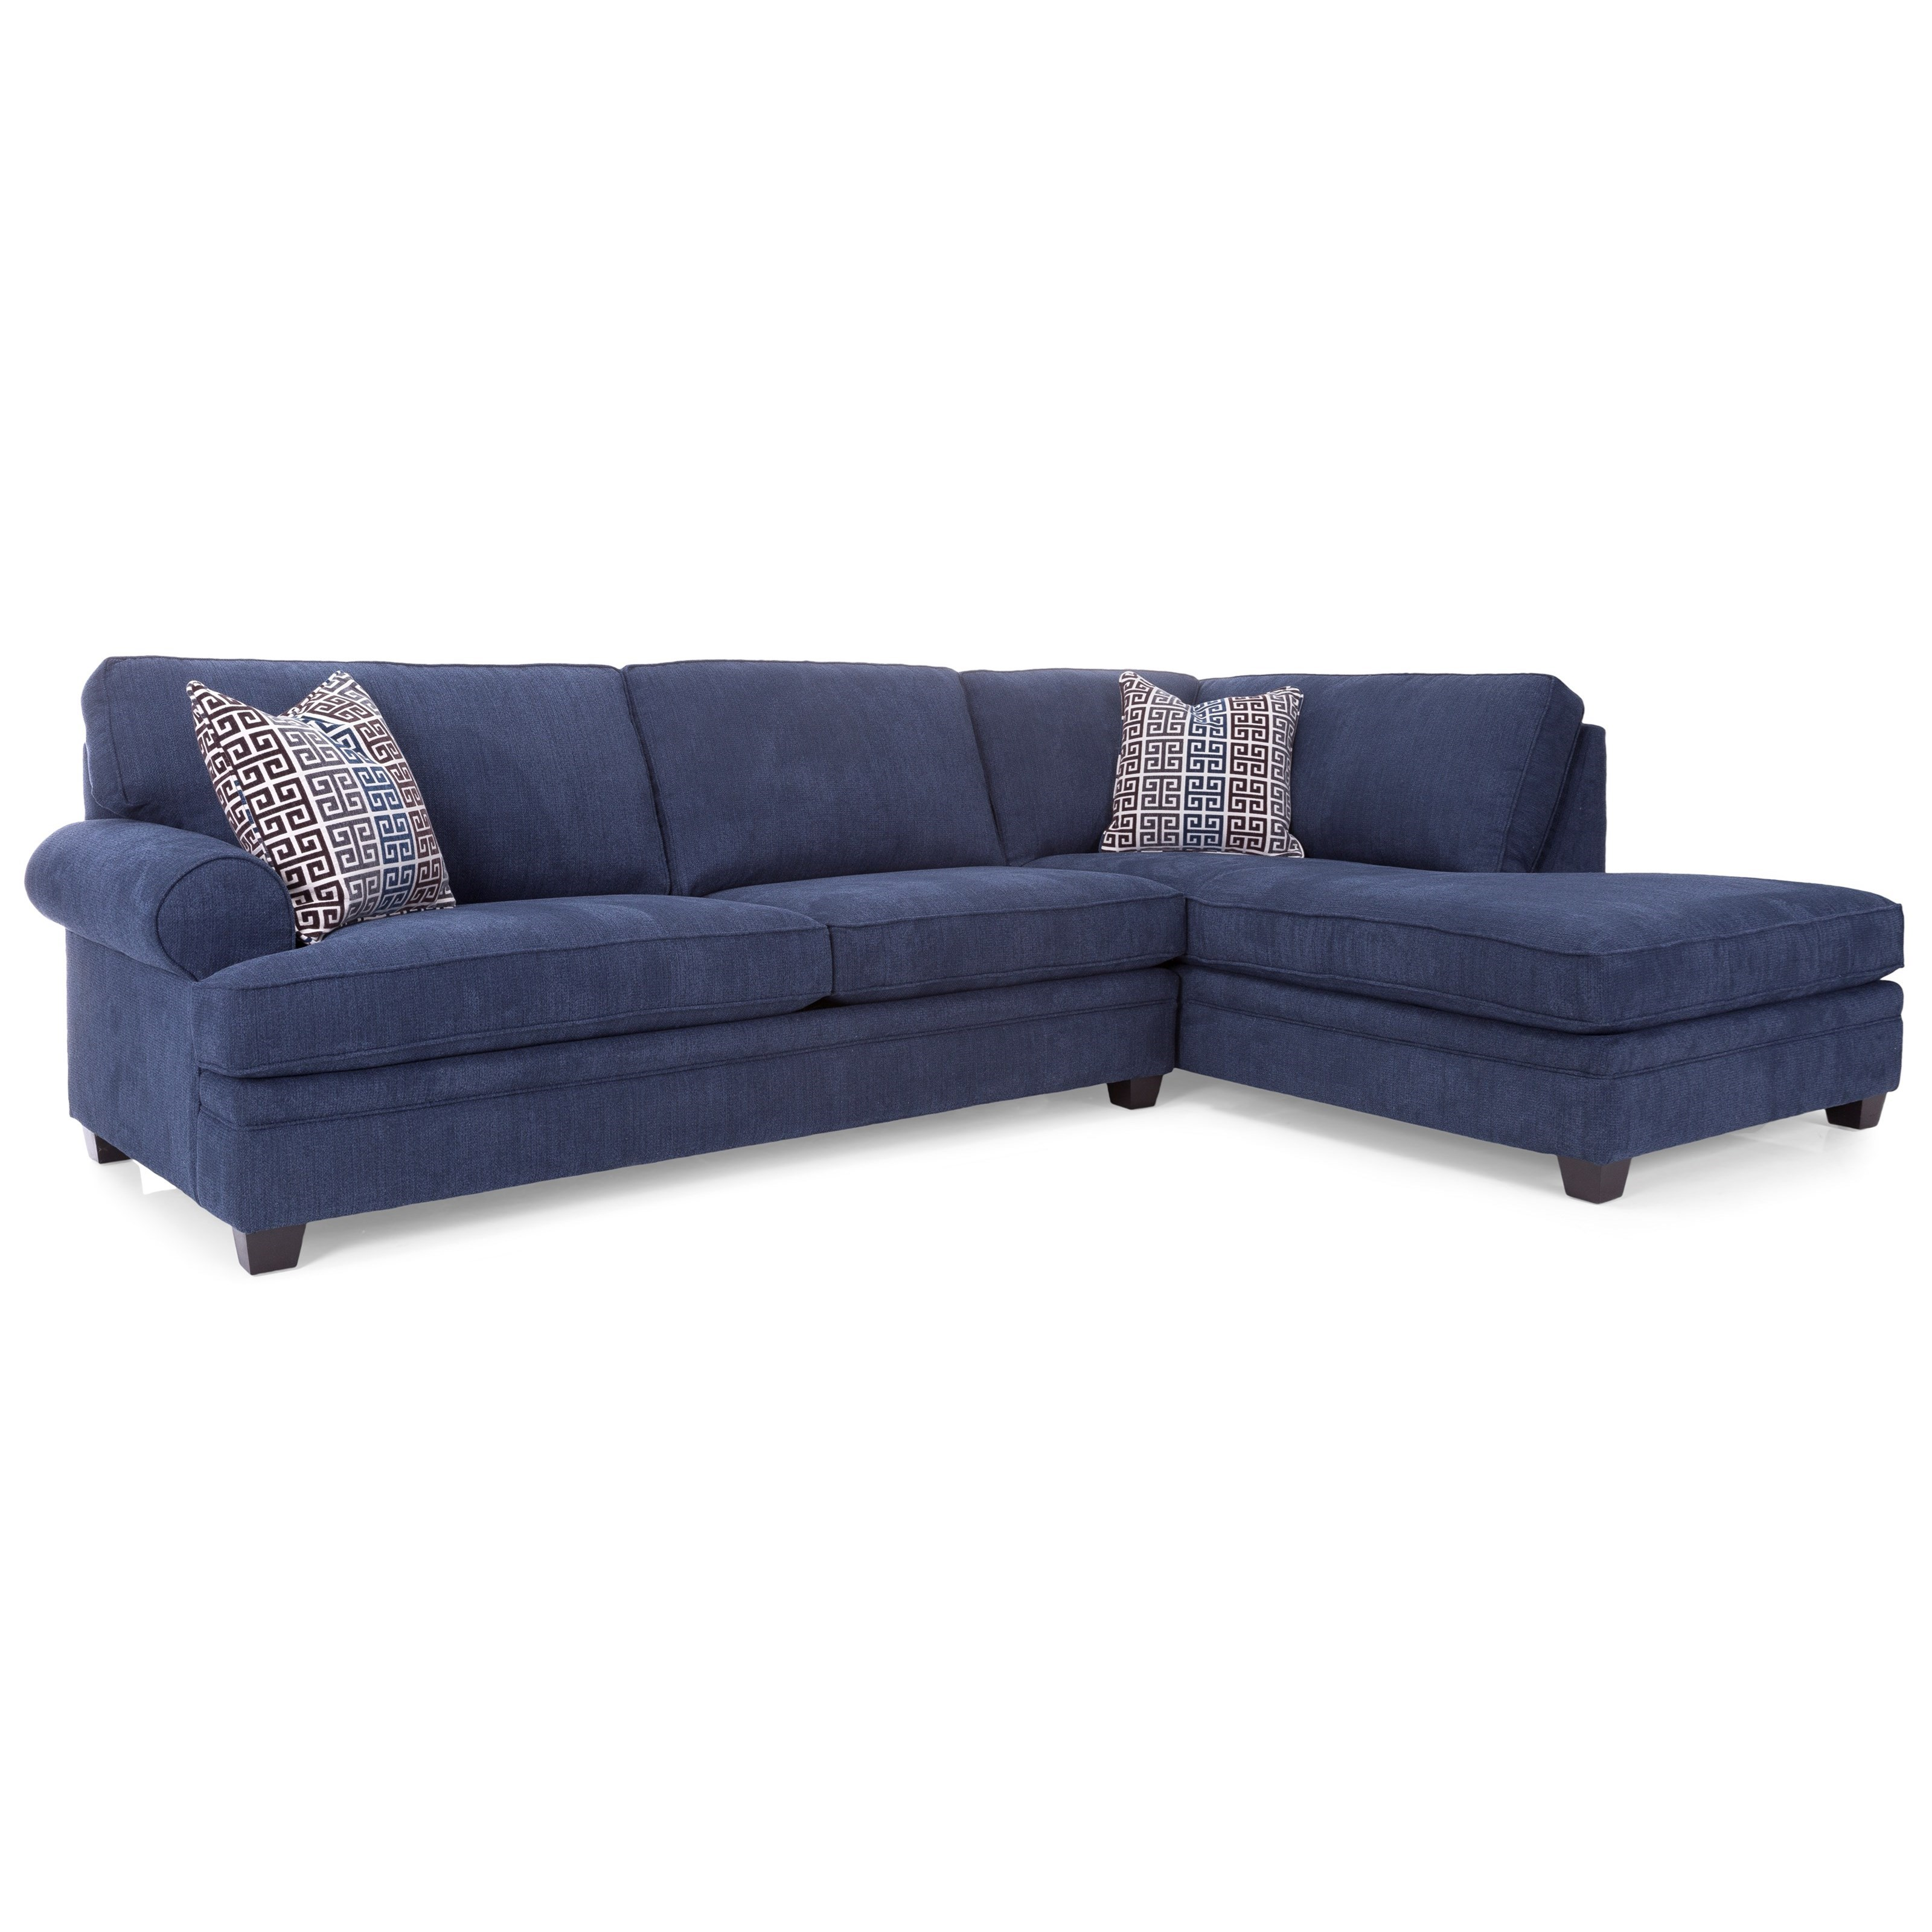 2695 Sofa with Chaise by Decor-Rest at Rooms for Less